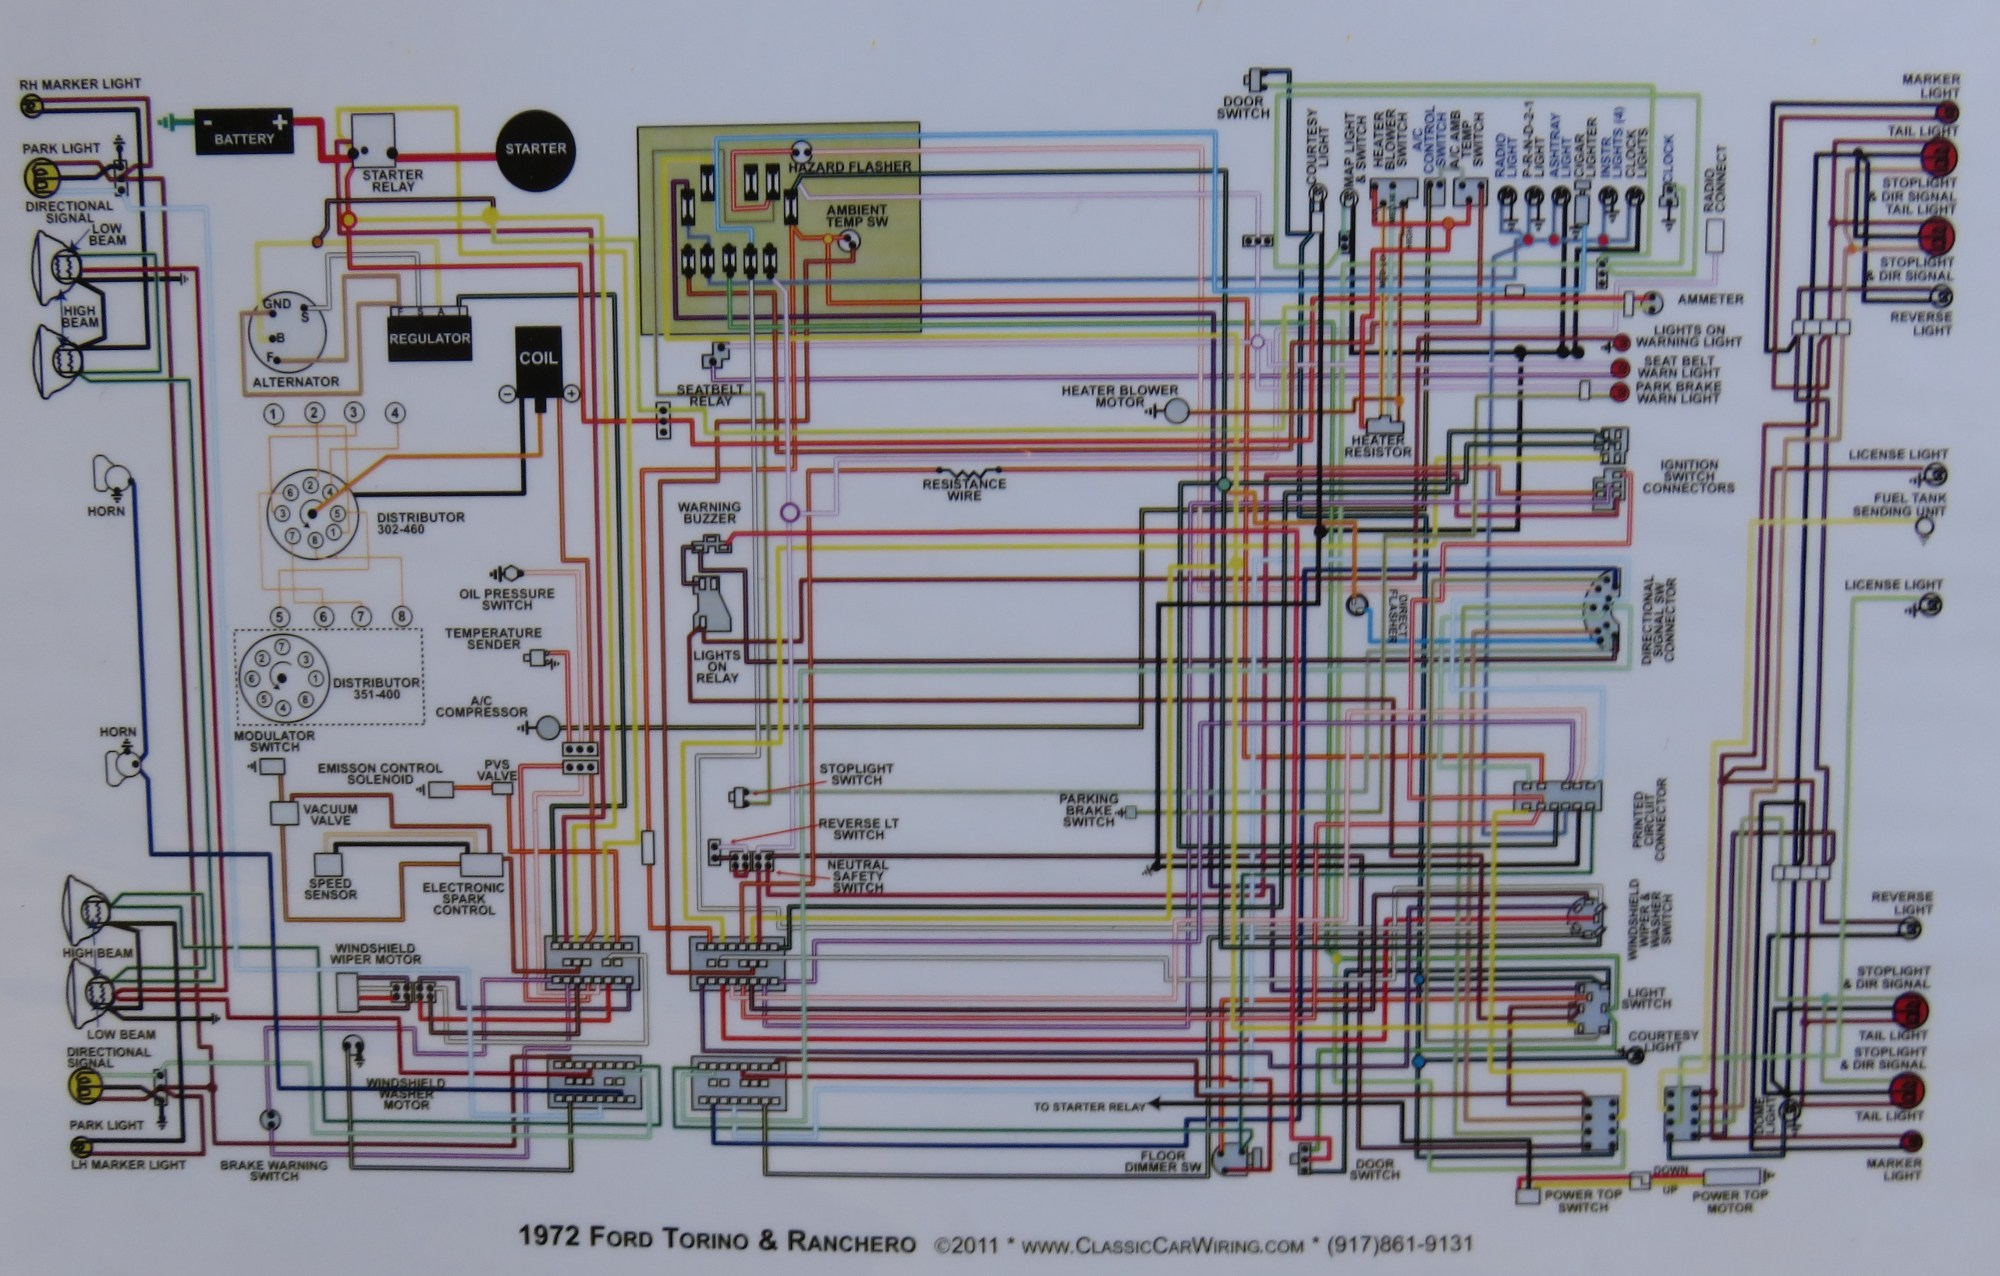 Haier Wiring Diagram - haier window unit air conditioner ... on